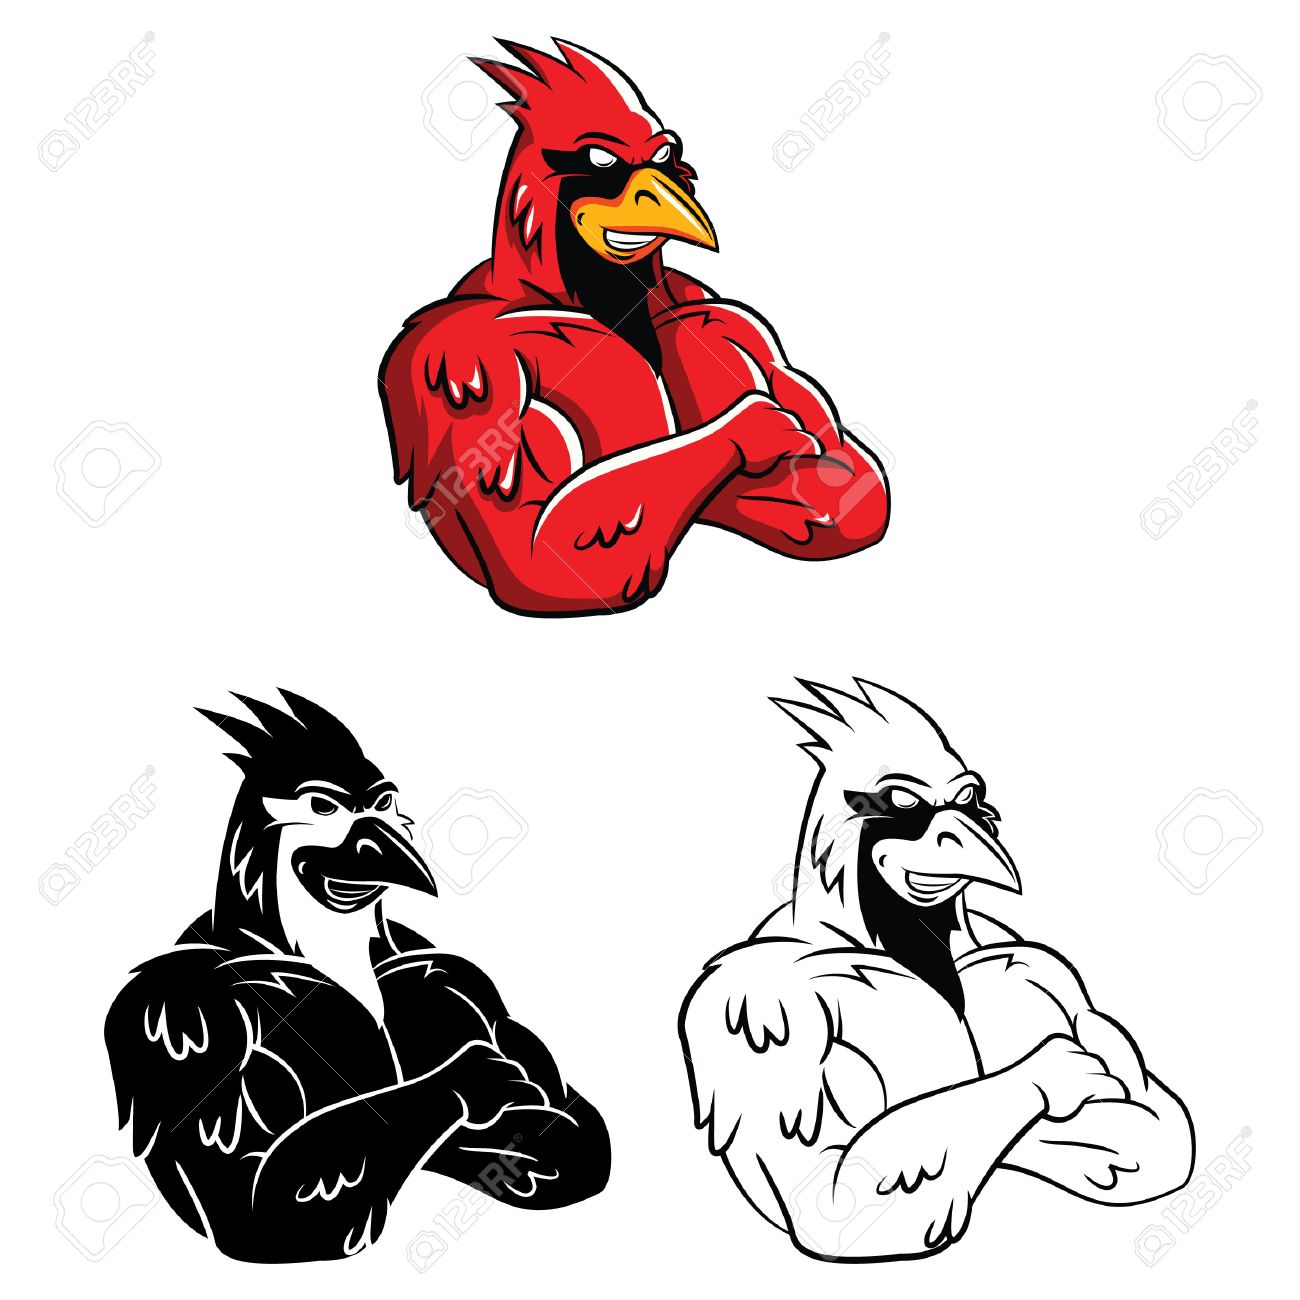 Coloring Book Cardinal Bird Cartoon Character Stock Vector